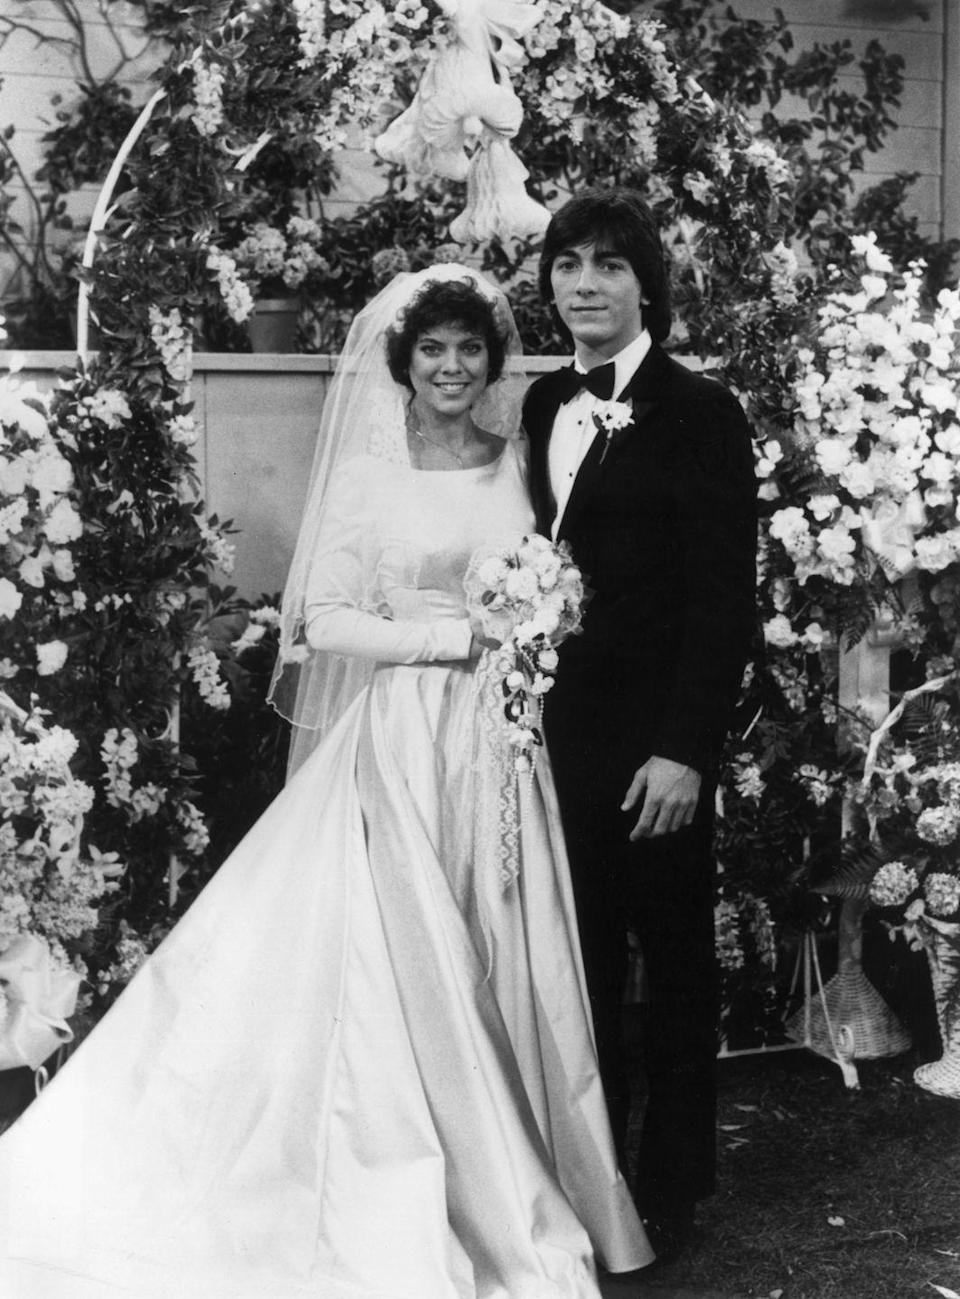 <p>By the end of <em>Happy Days, </em>it was official: Joanie loved Chachi. The couple got married in the series finale and the bride wore a long-sleeve bateau neck satin gown with a waterfall bouquet. </p>